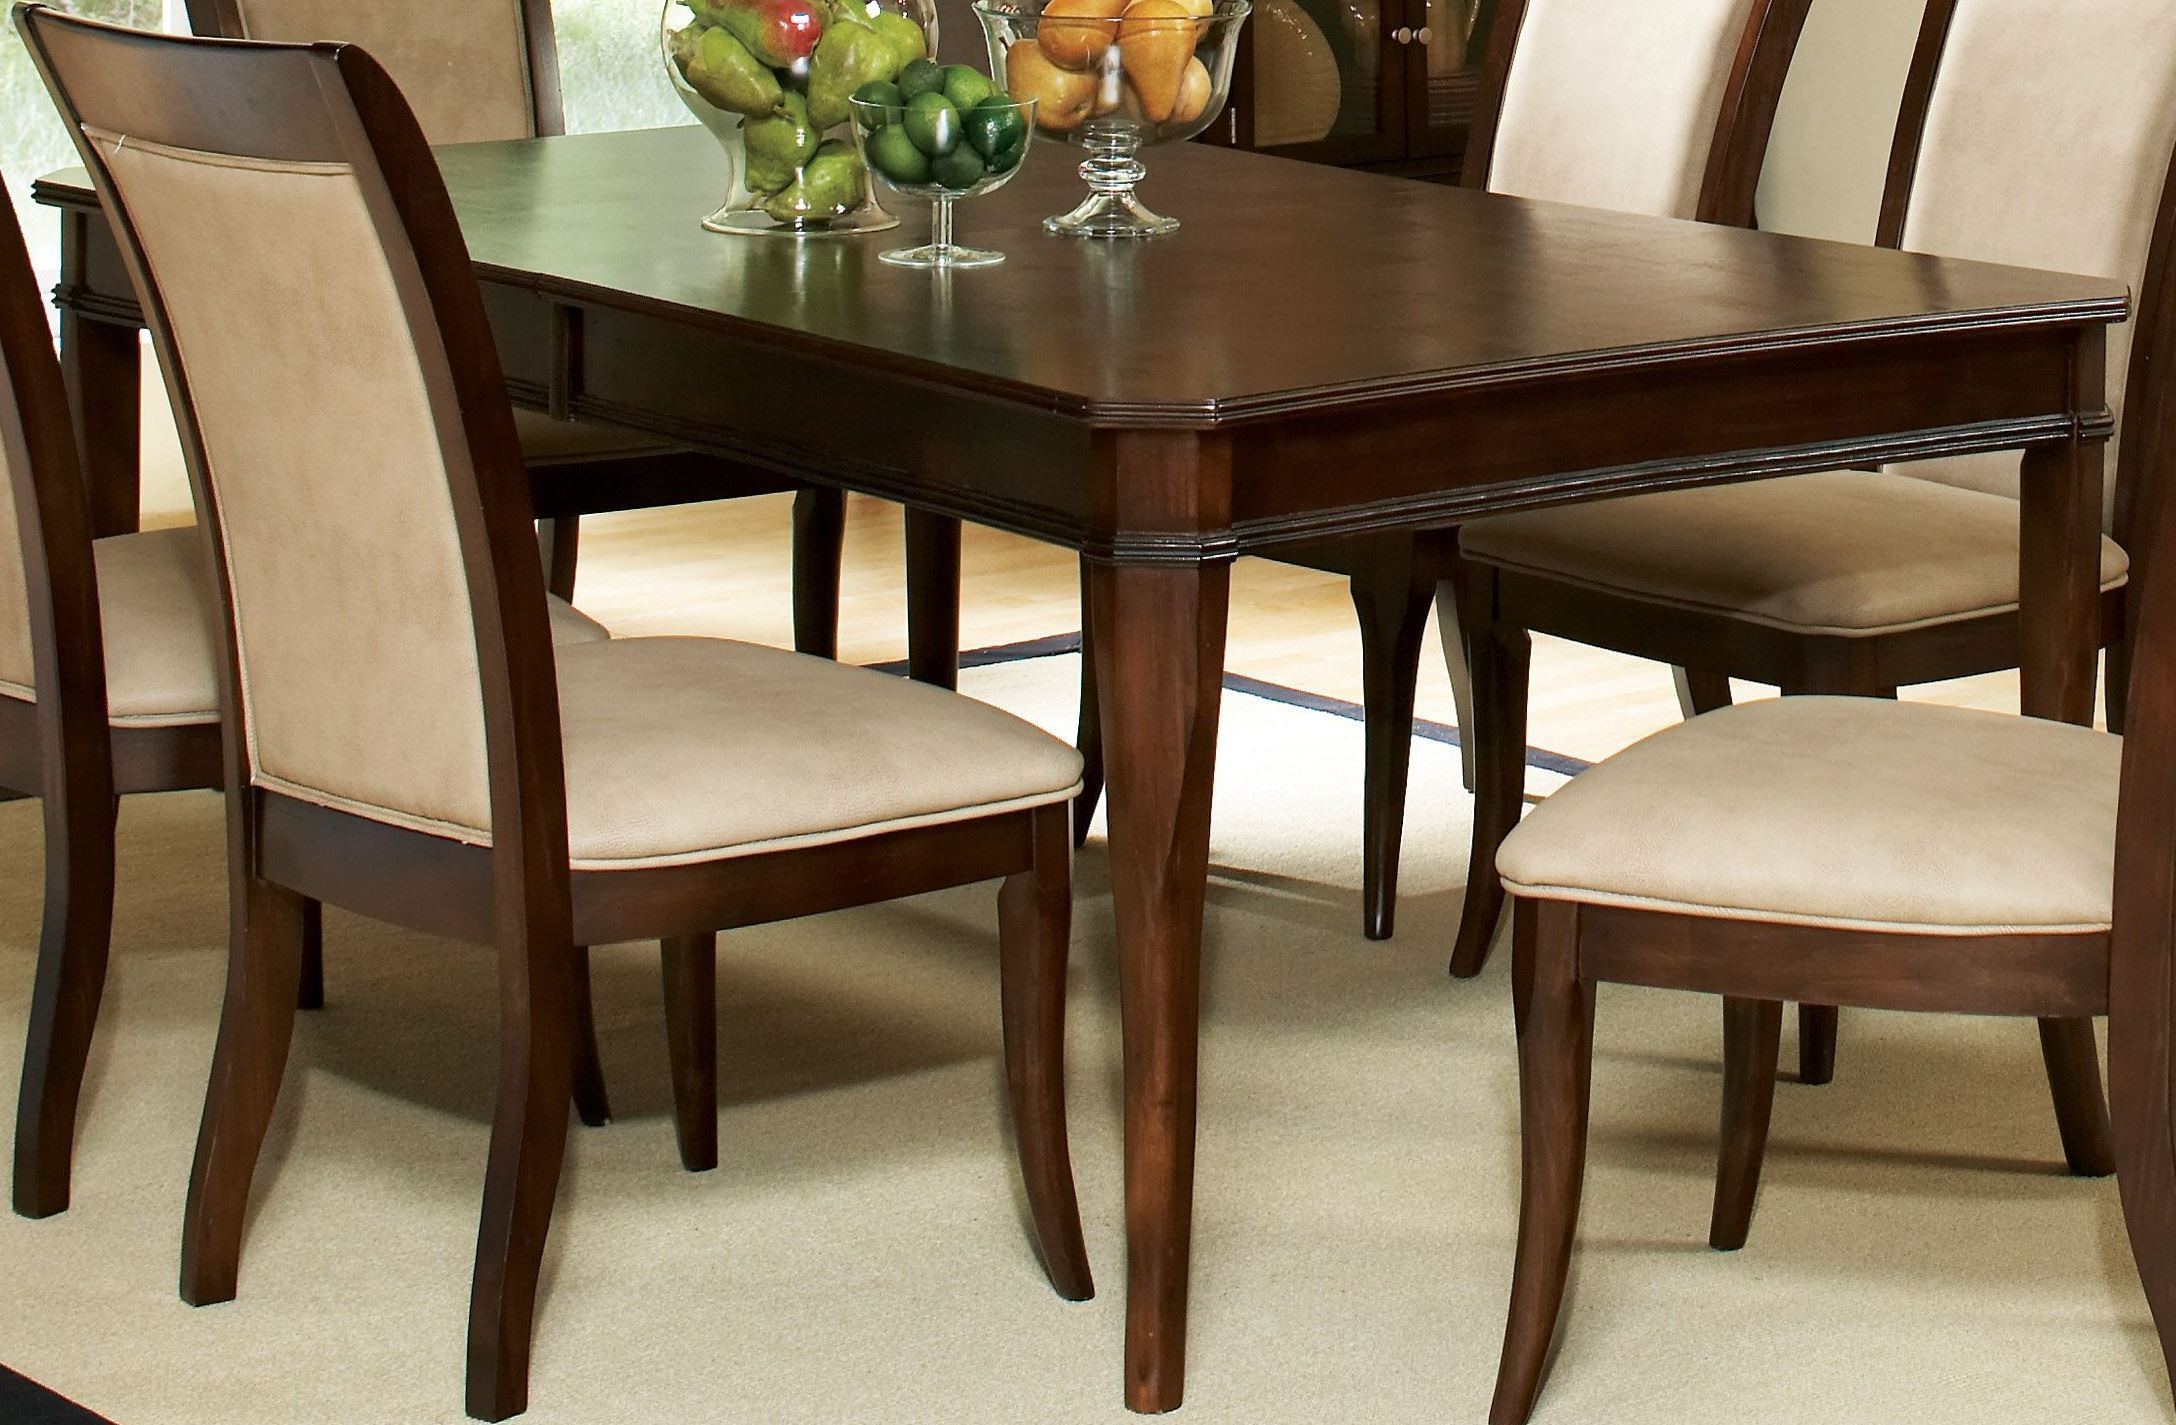 Marseille merlot cherry extendable rectangular dining for Cherry dining table